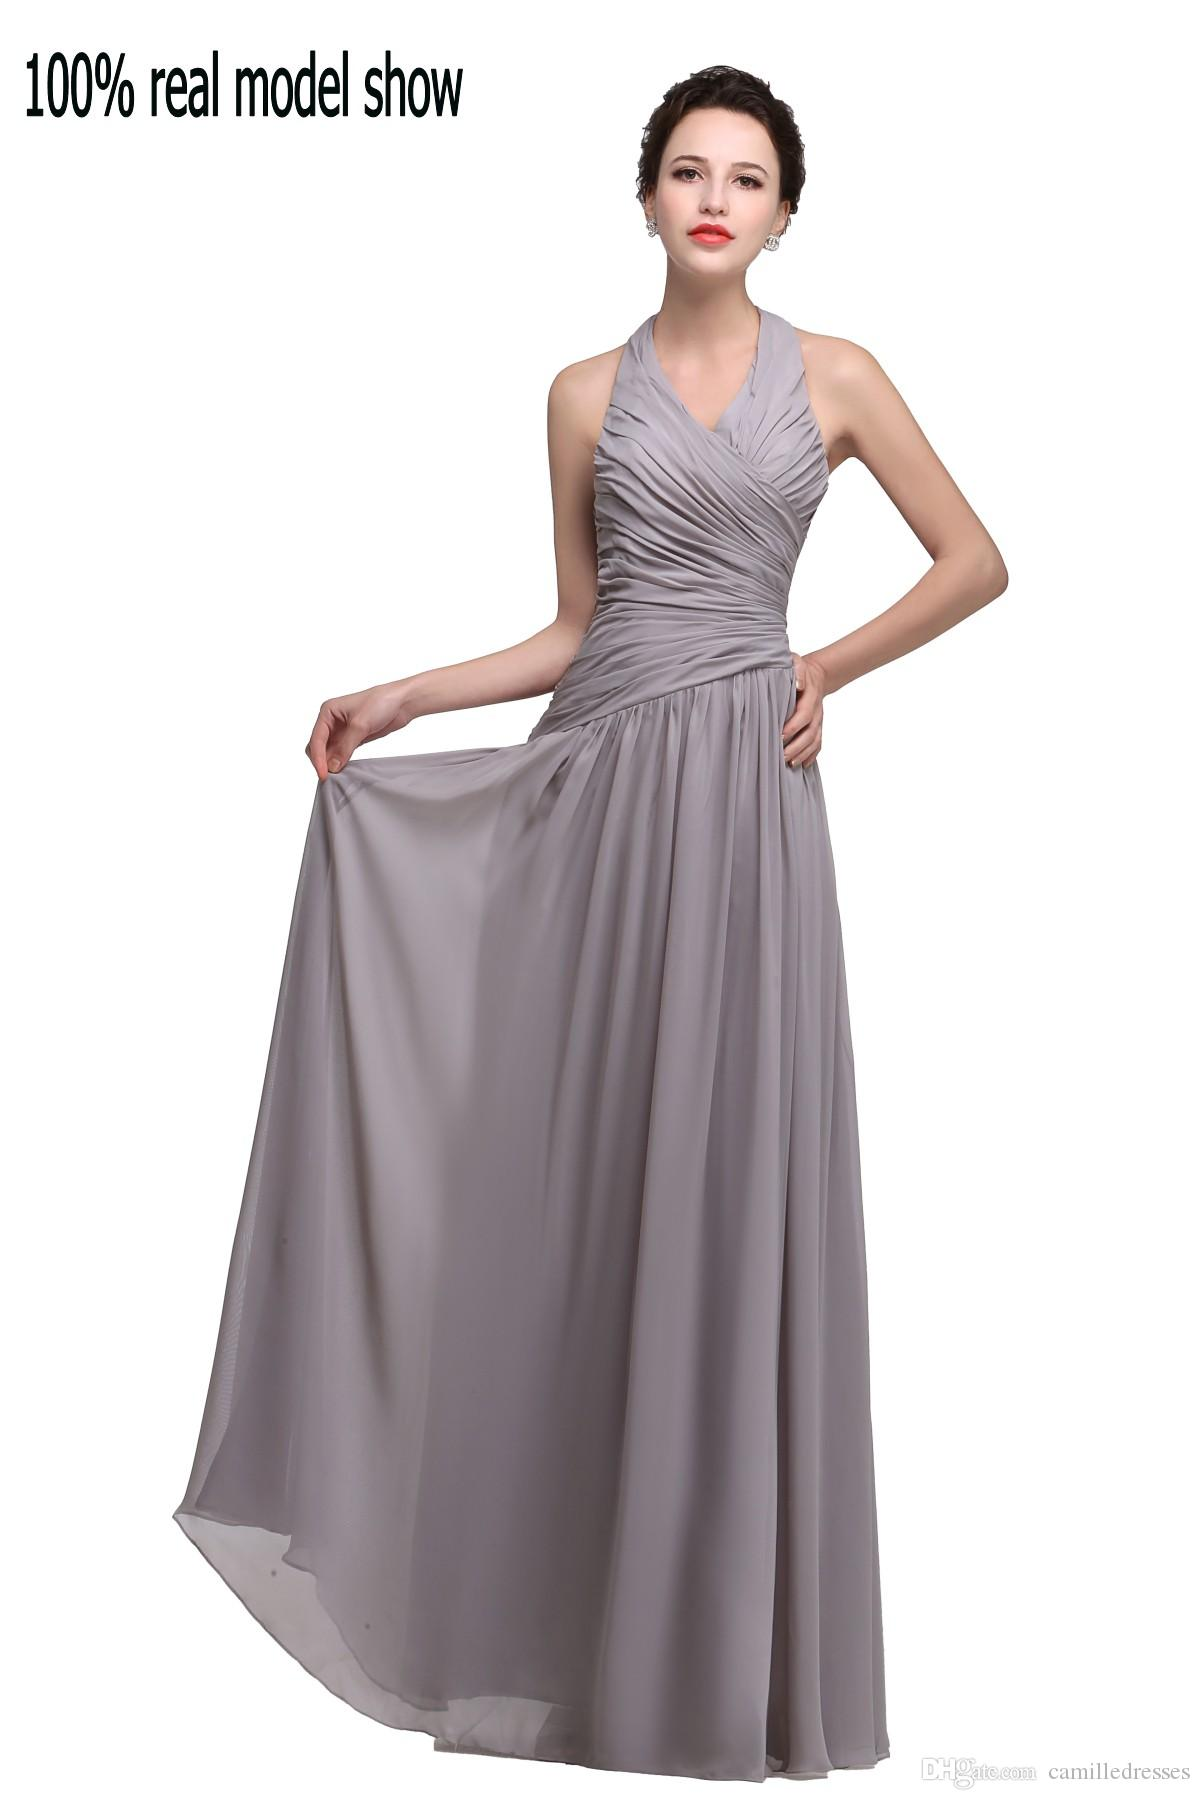 Elegant 2015 Designer Halter Evening Gowns Silver Gray Backless ...